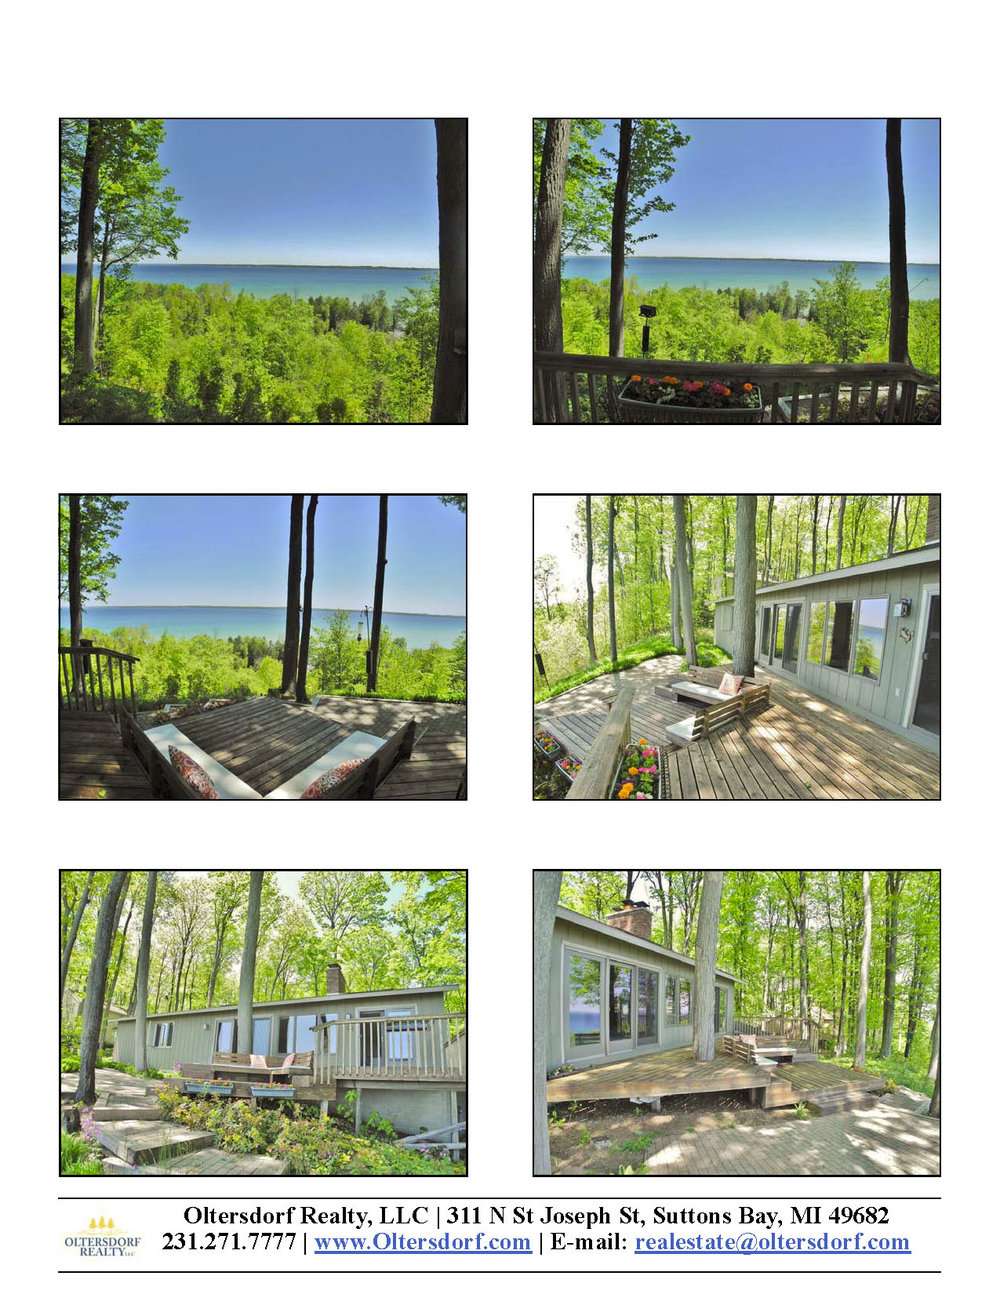 1451 S Bay View Trail, Suttons Bay, MI – Spectacular Panoramic West Bay Views, real estate for sale by Oltersdorf Realty LLC (6).jpg